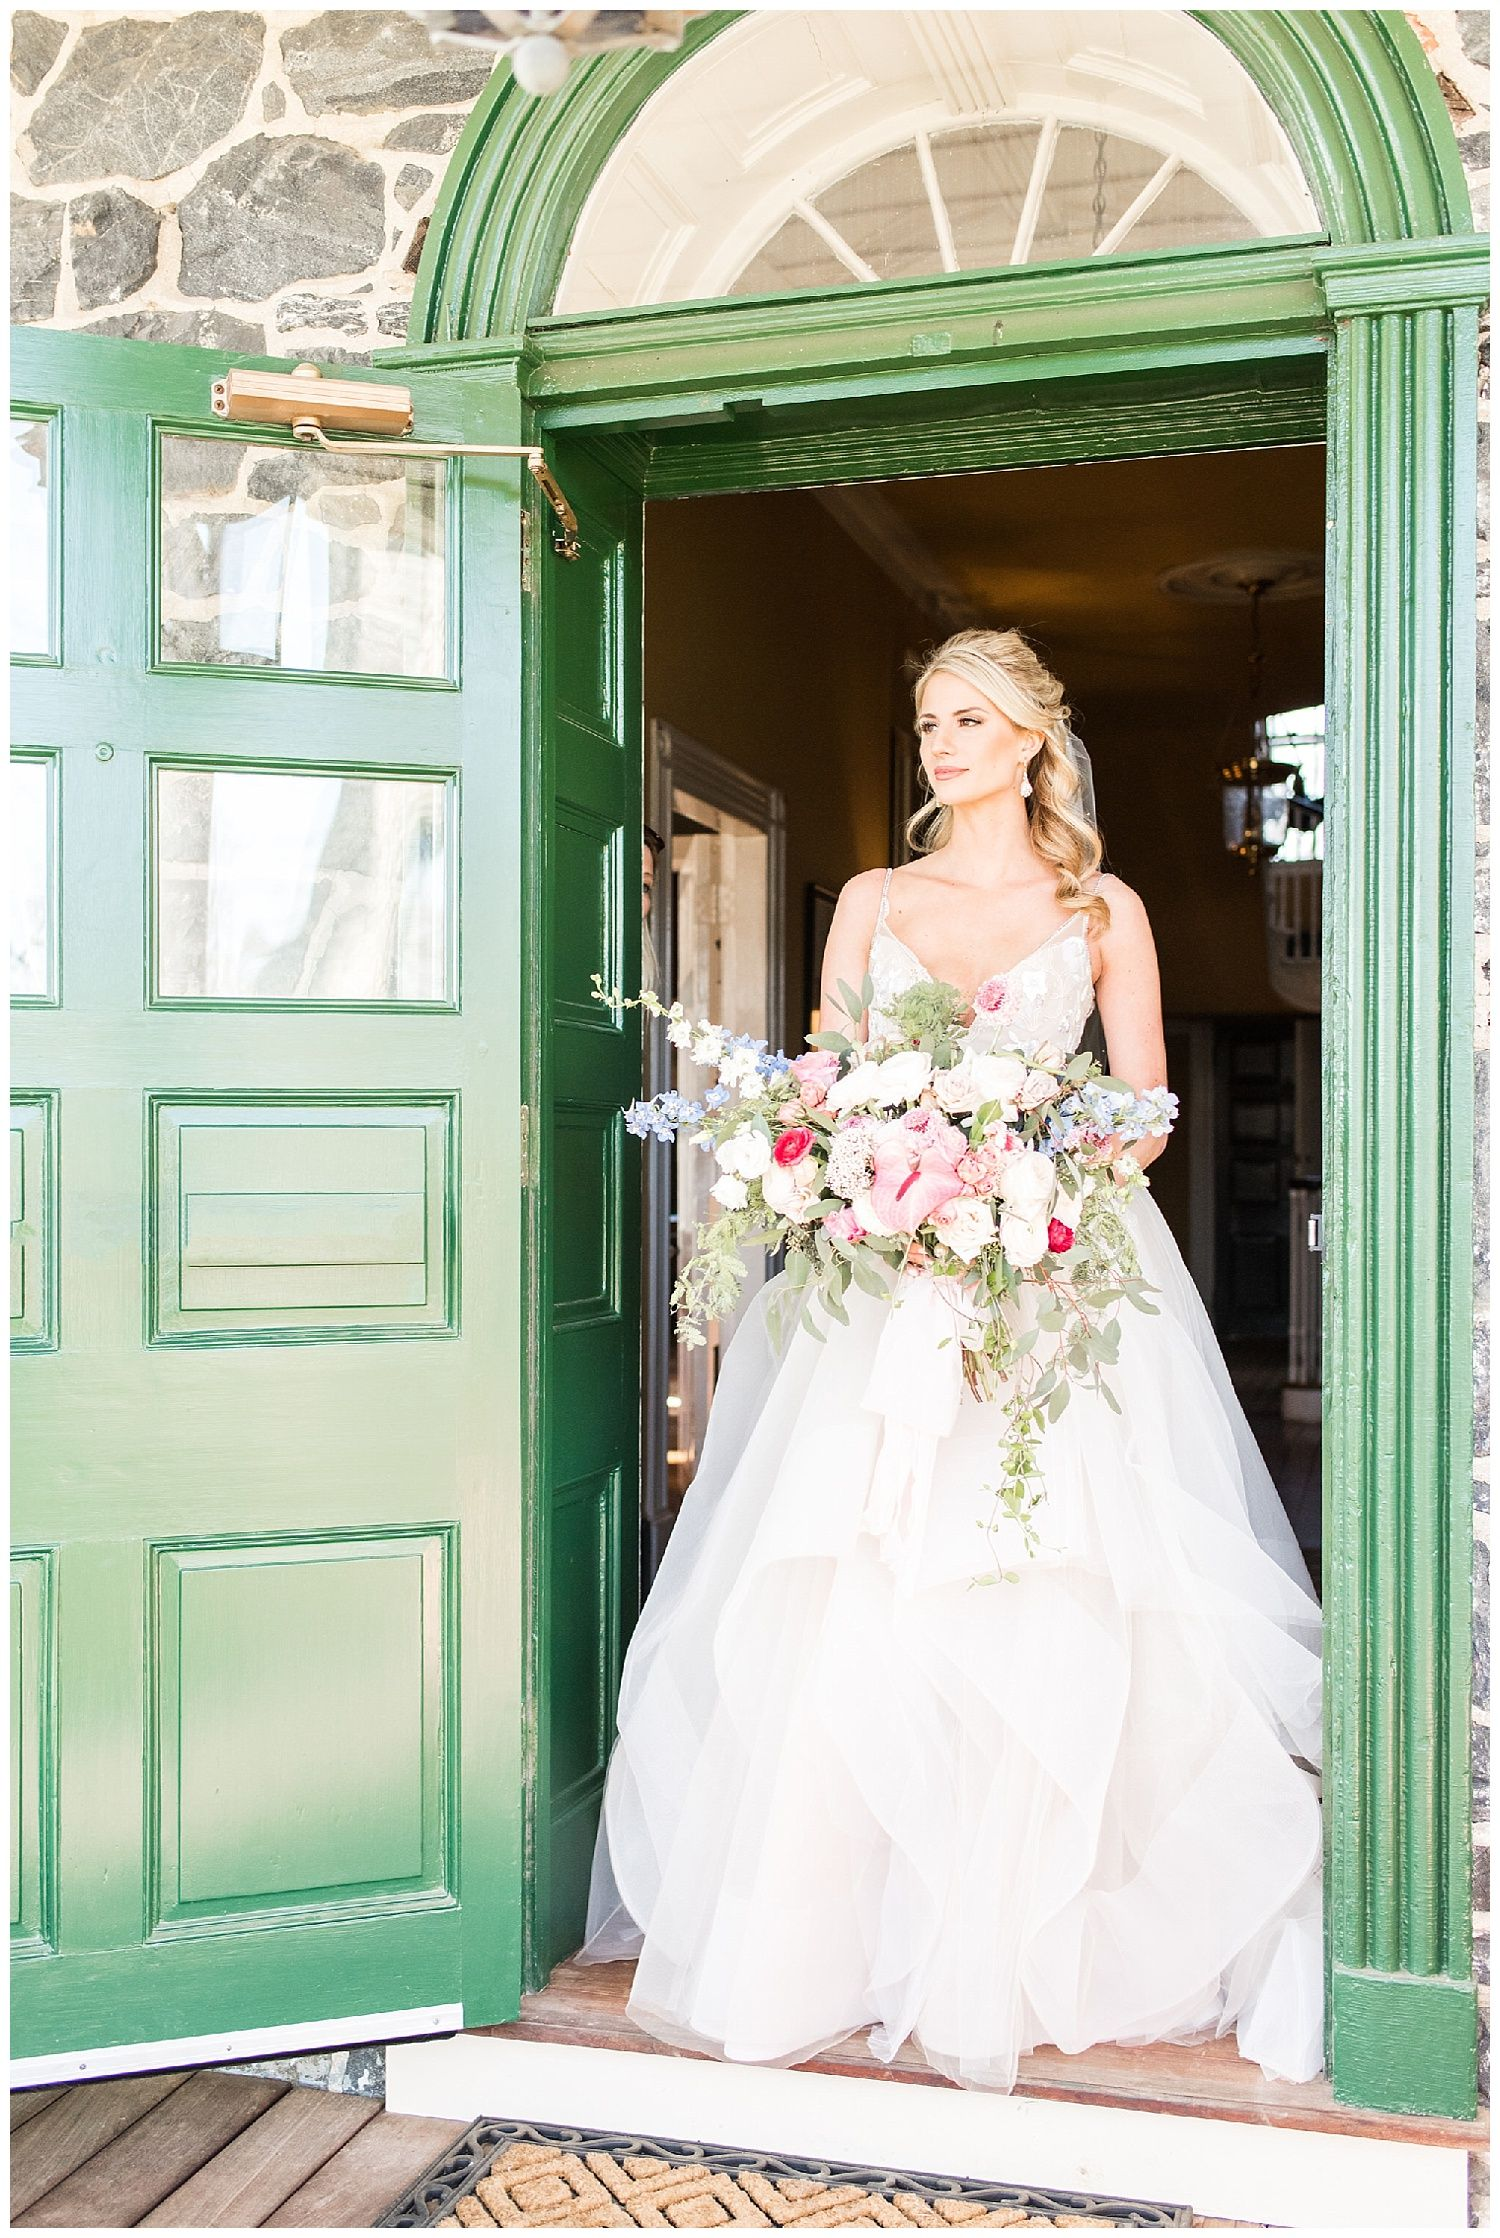 Romantic Styled Elopement At The Inn At Grace Winery Lindsay Eileen Photography Red Oak Weddings A Wedding Lifestyle Blog For Red Oak Weddings A Weddi Wedding